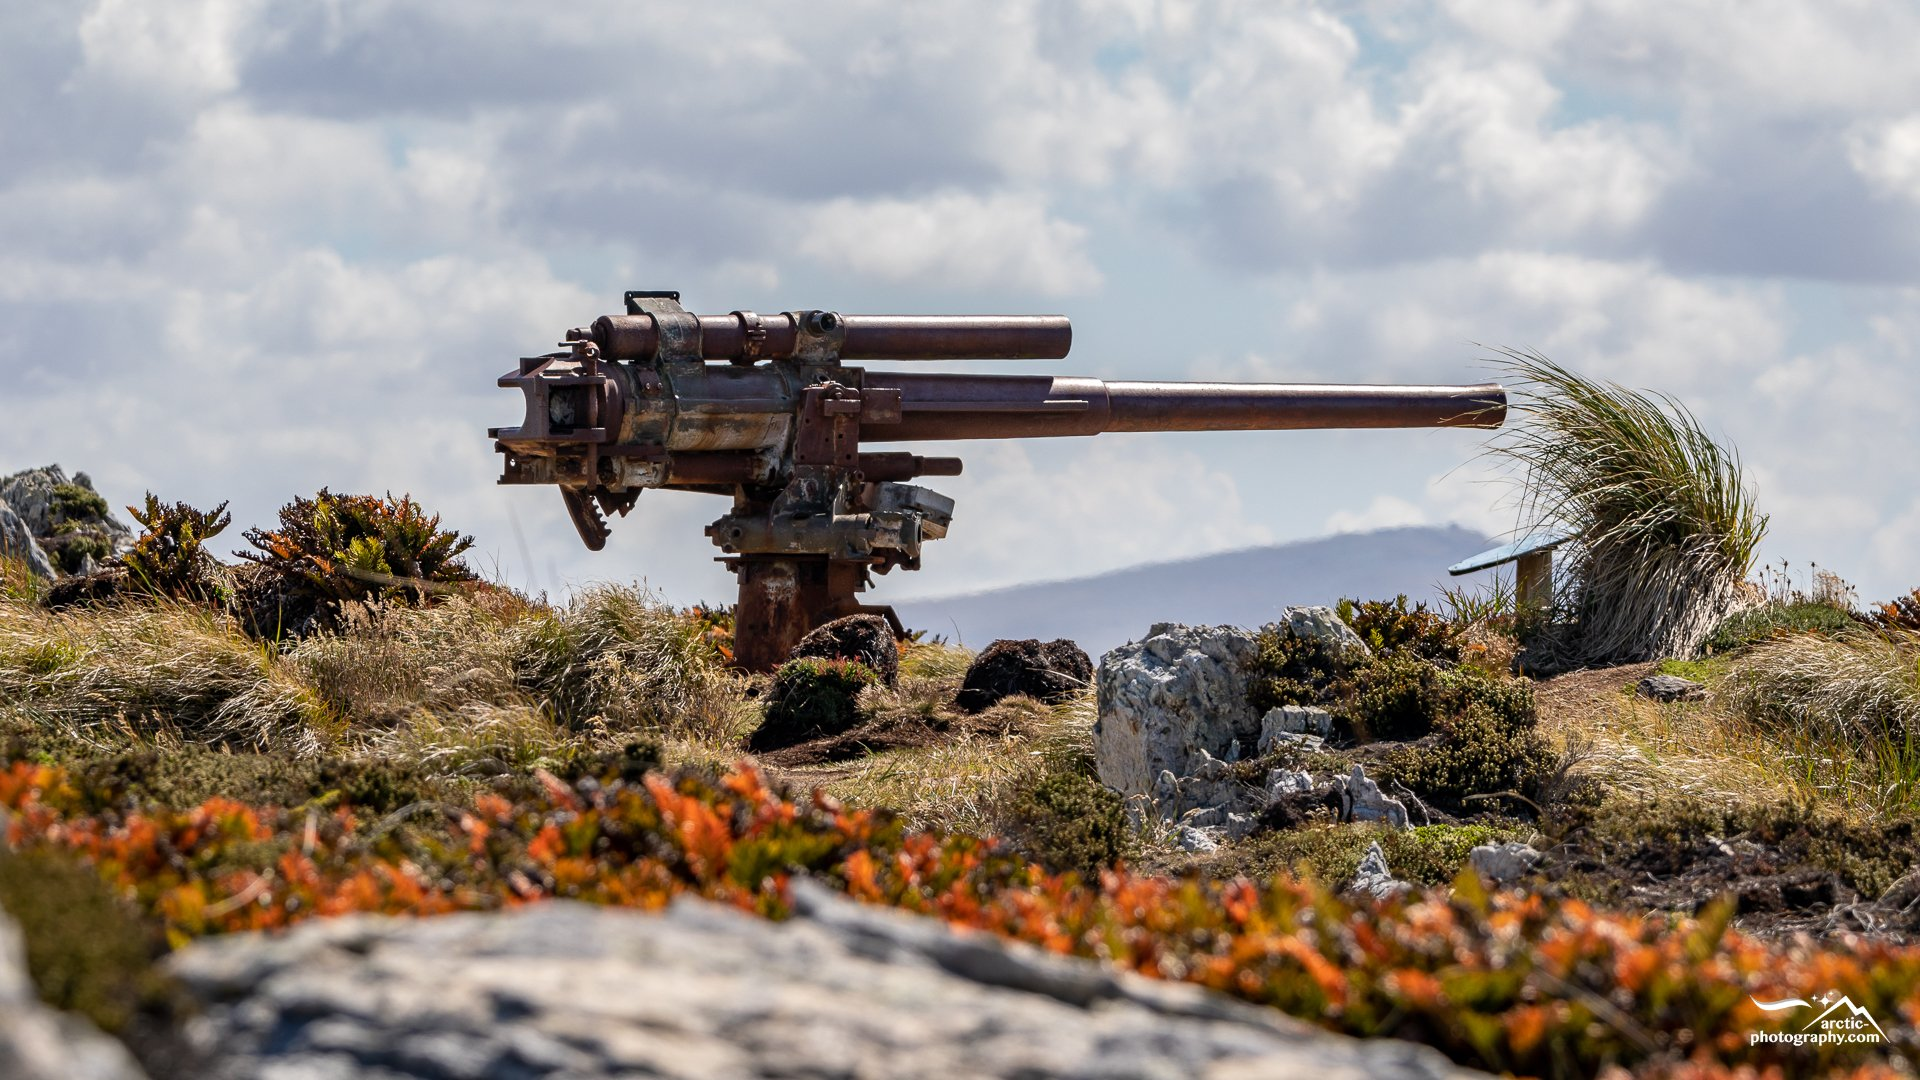 Historic army equipment, Gypsy cove, Falkland Islands